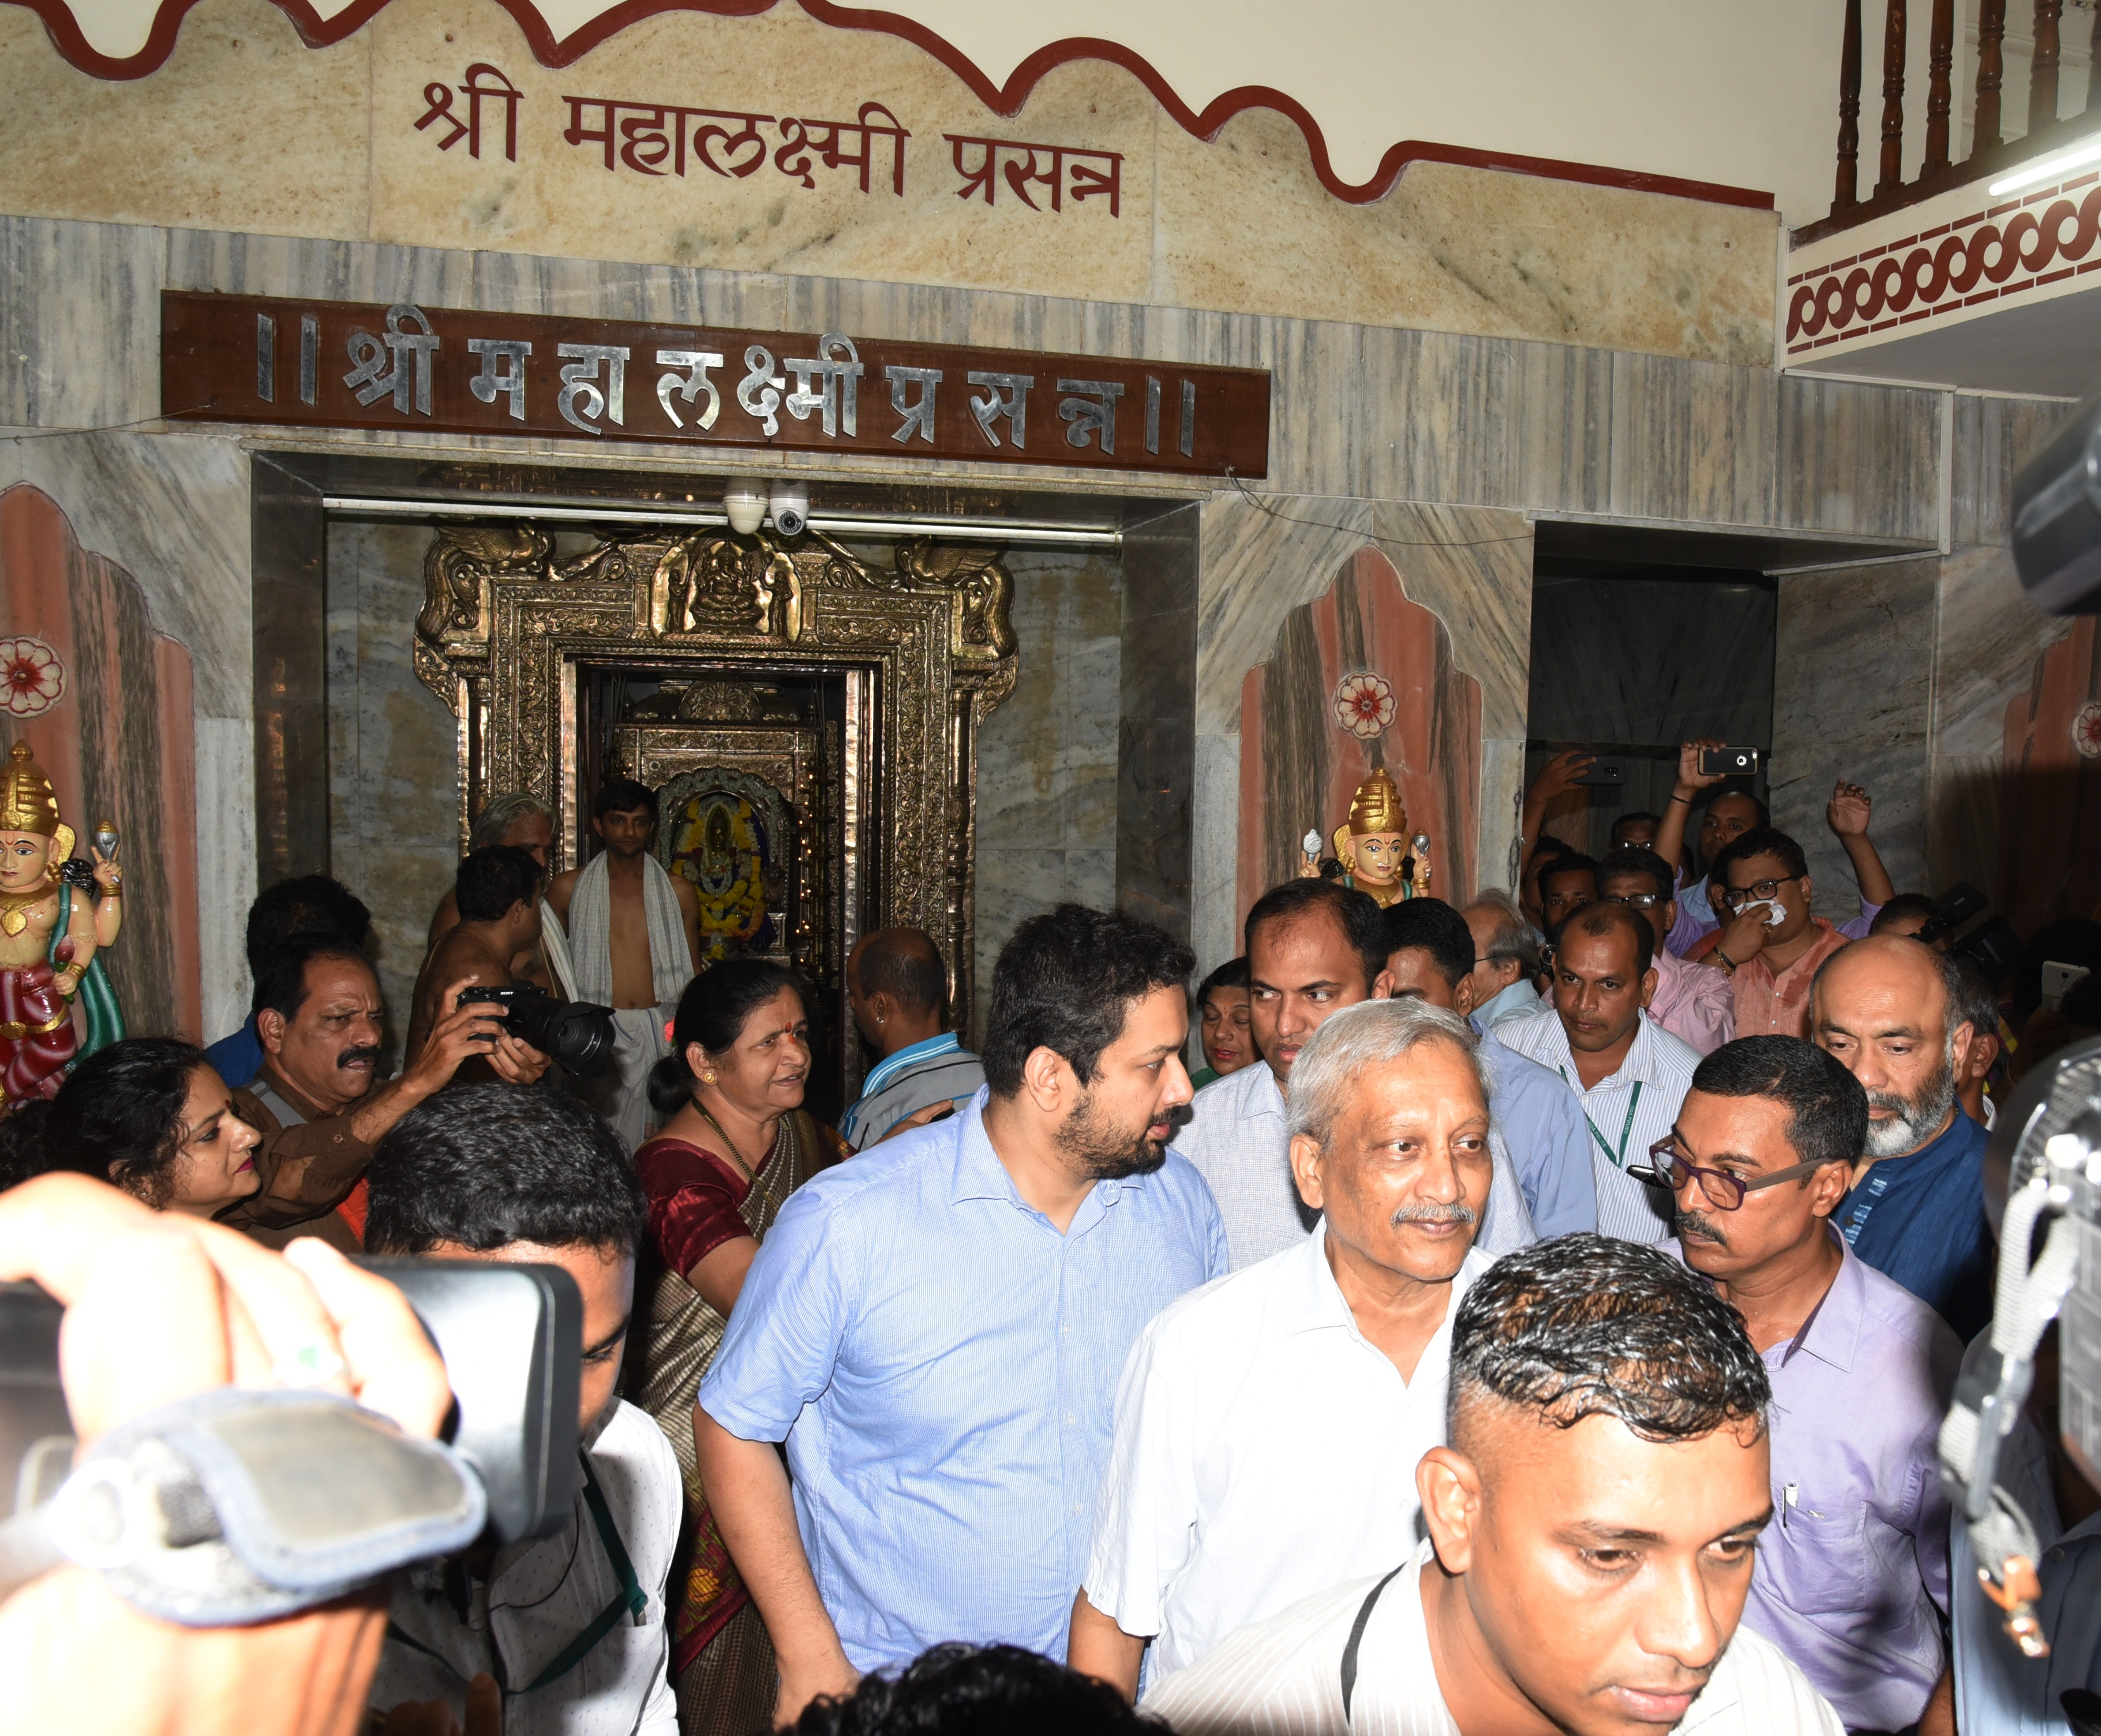 Manohar Parrikar started his day on Friday with temple visits.